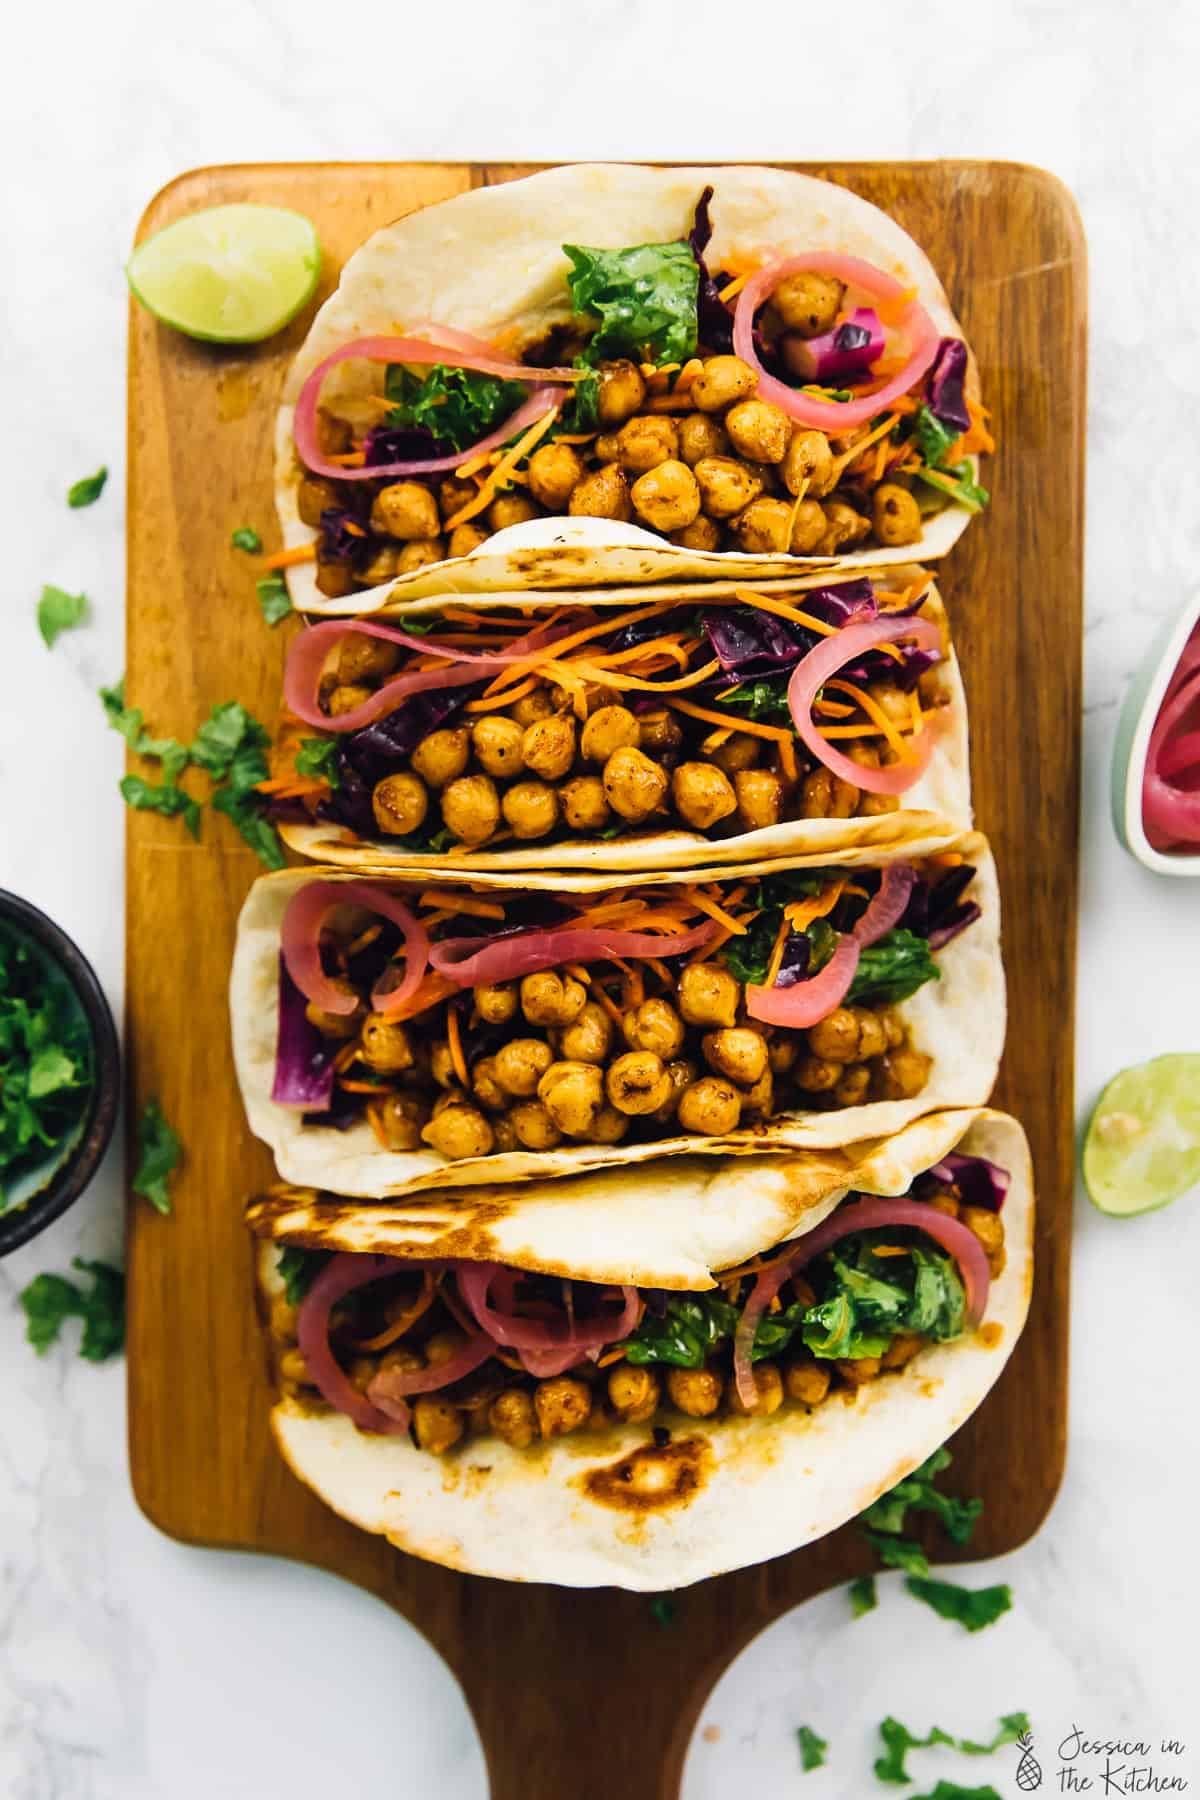 These BBQ Chickpea Tacos make such an easy and flavourful dinner recipe! The chickpeas are coated in caramelised bbq sauce, and it's all served with pickled onions and a divine kale and cabbage slaw! Vegan and great for Super Bowl! via https://jessicainthekitchen.com